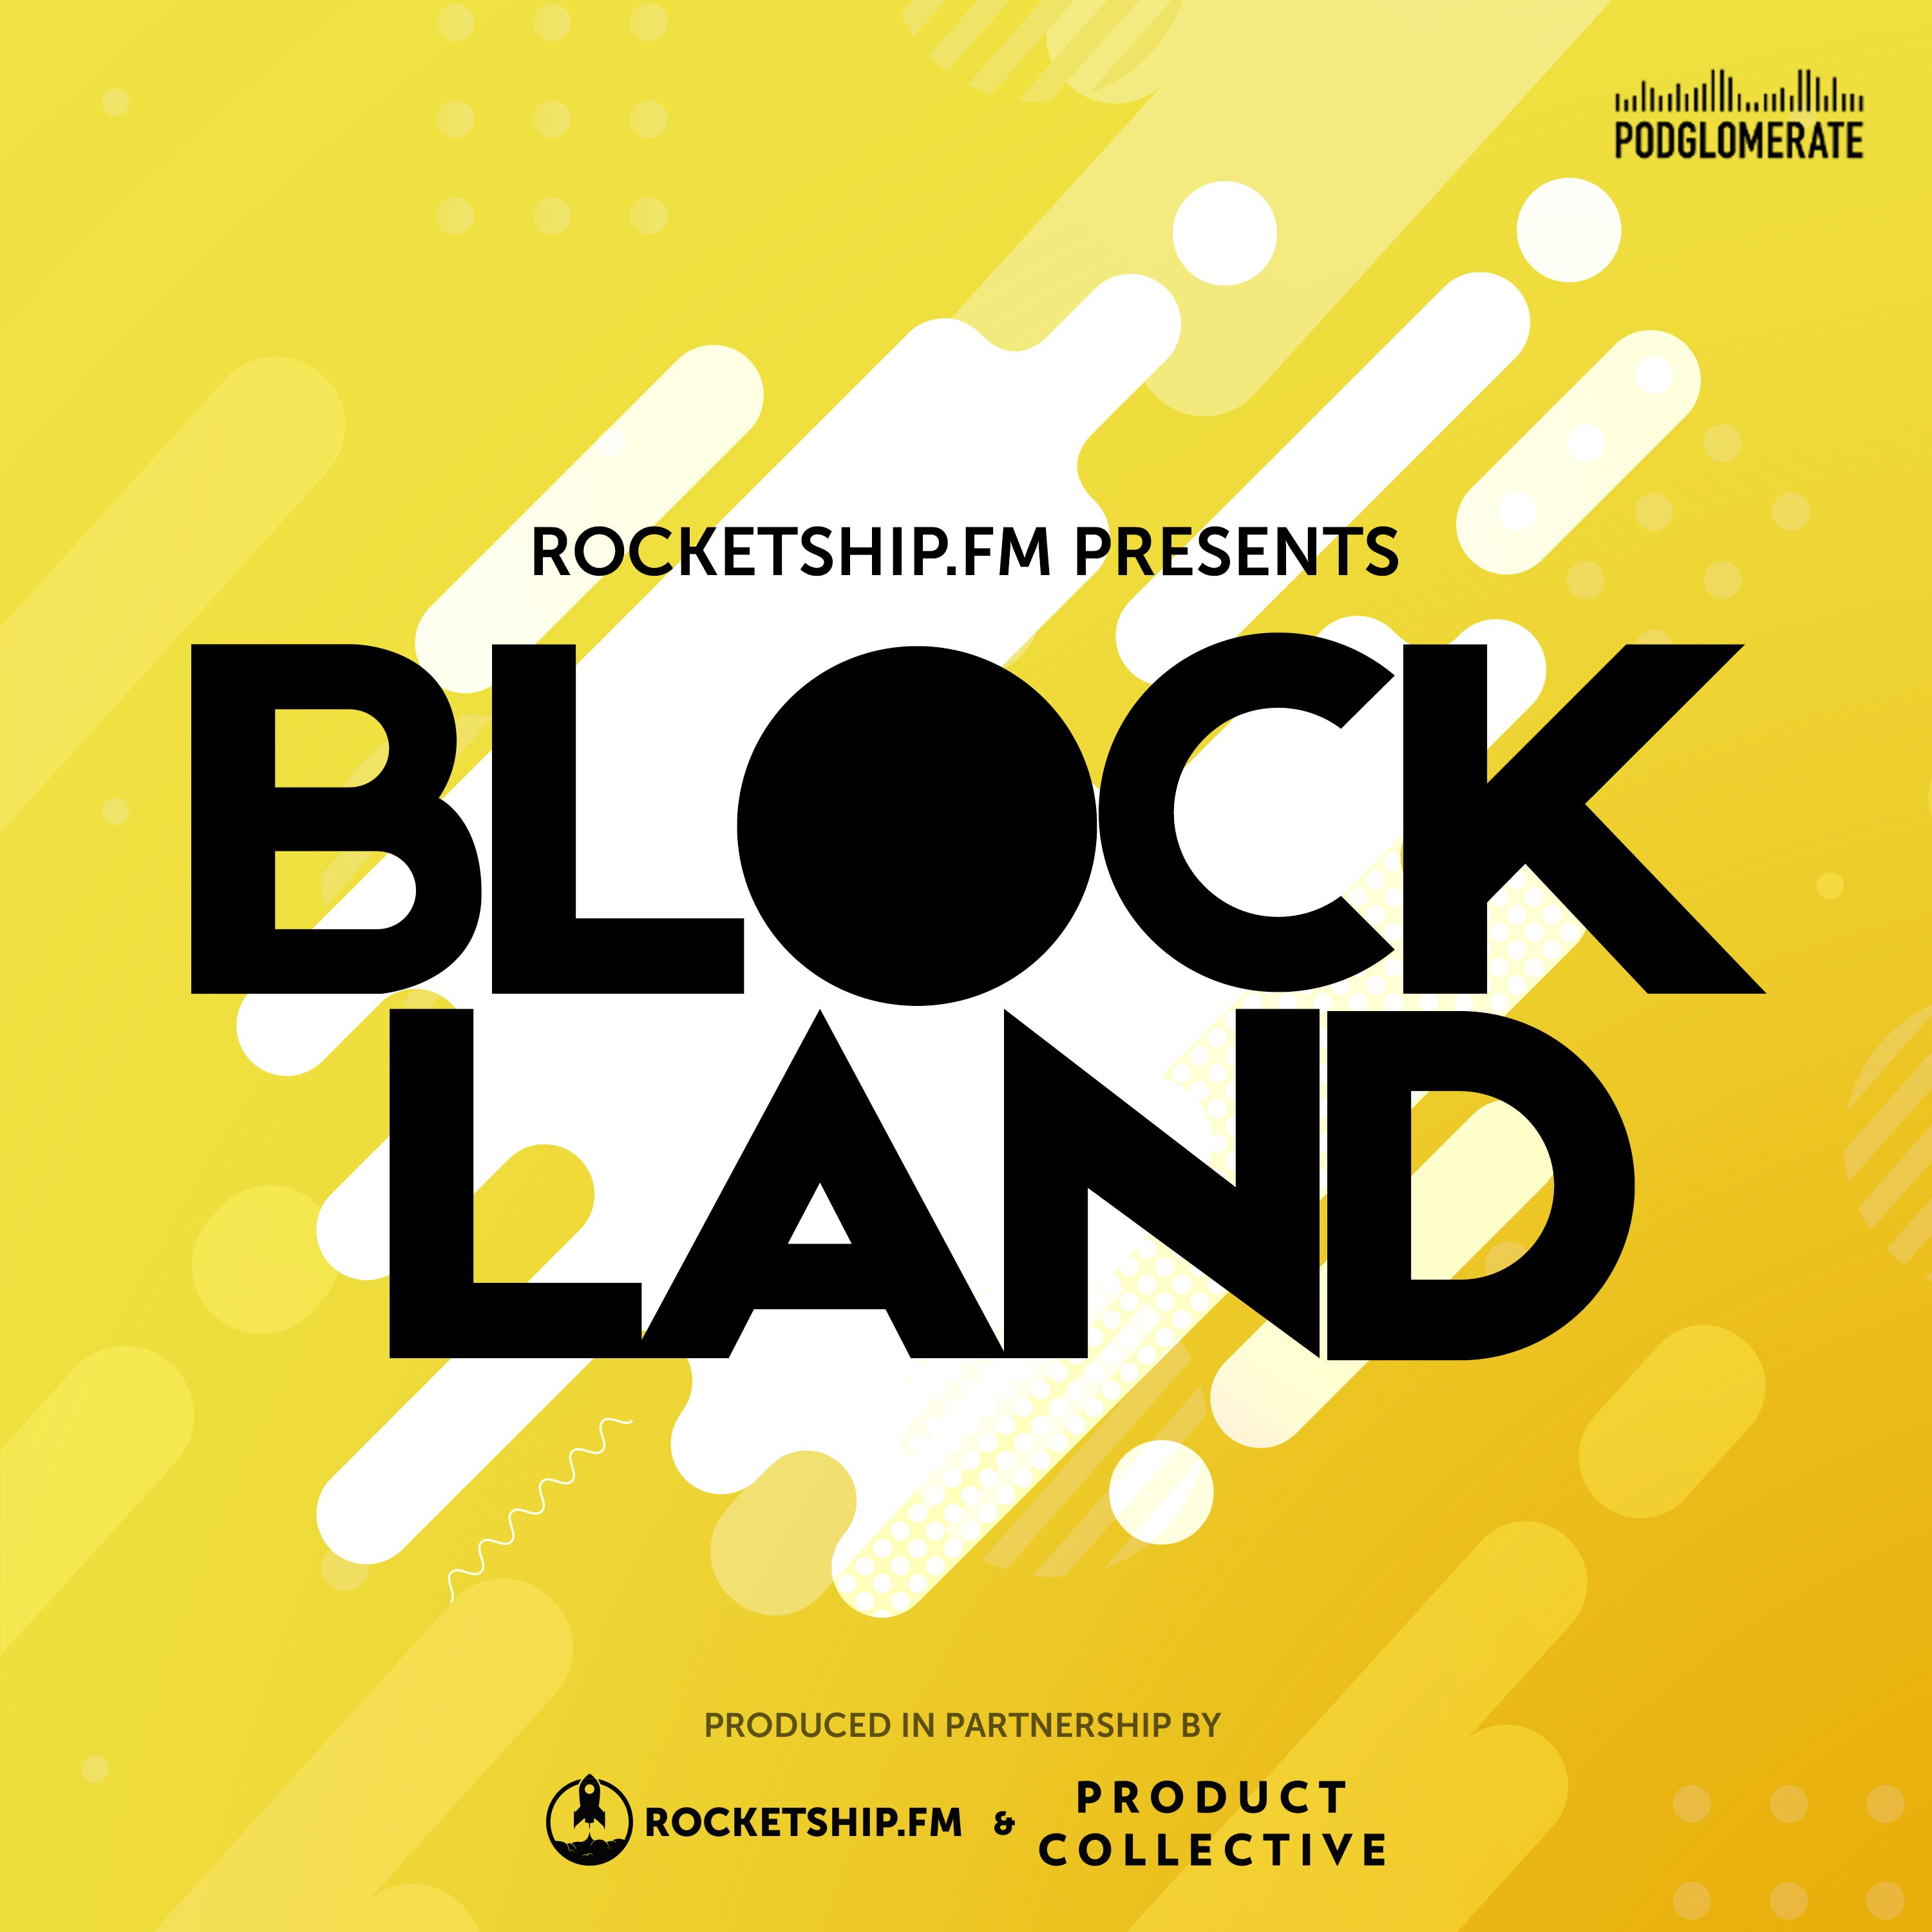 Blockland: A Brief History of Blockchain